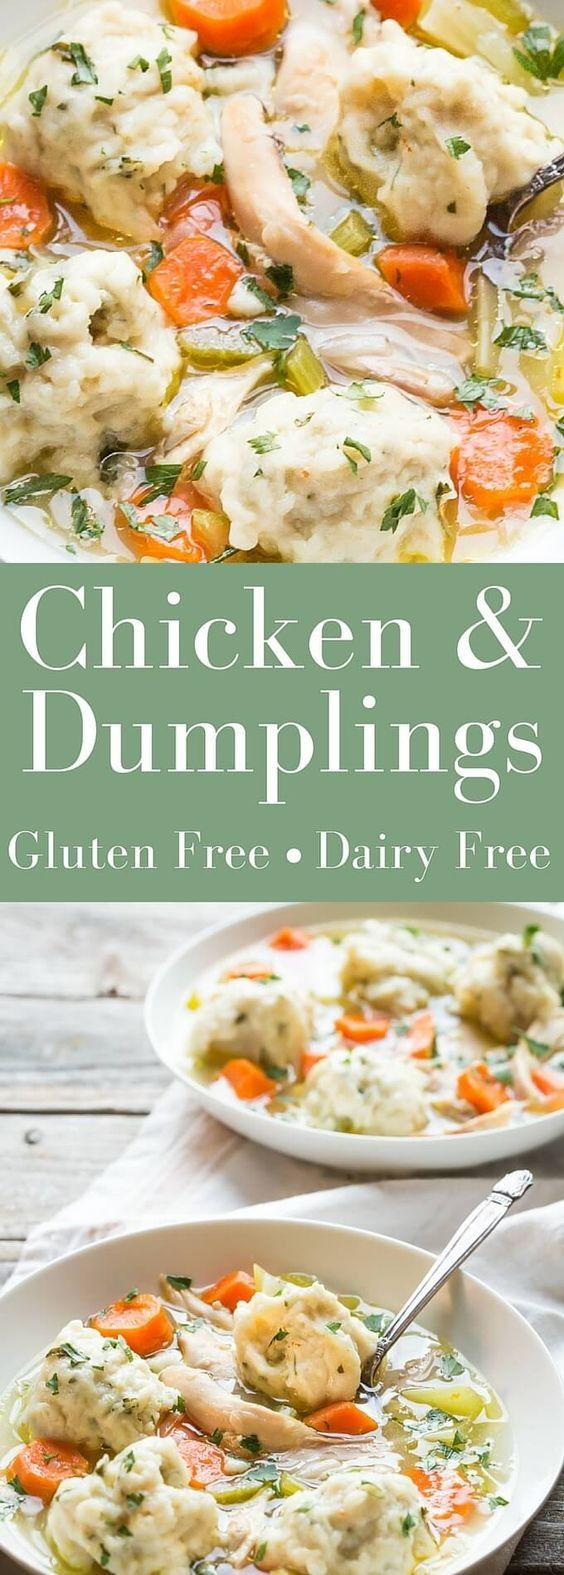 Best Ever Gluten Free Chicken and Dumplings! #glutenfreebreakfasts